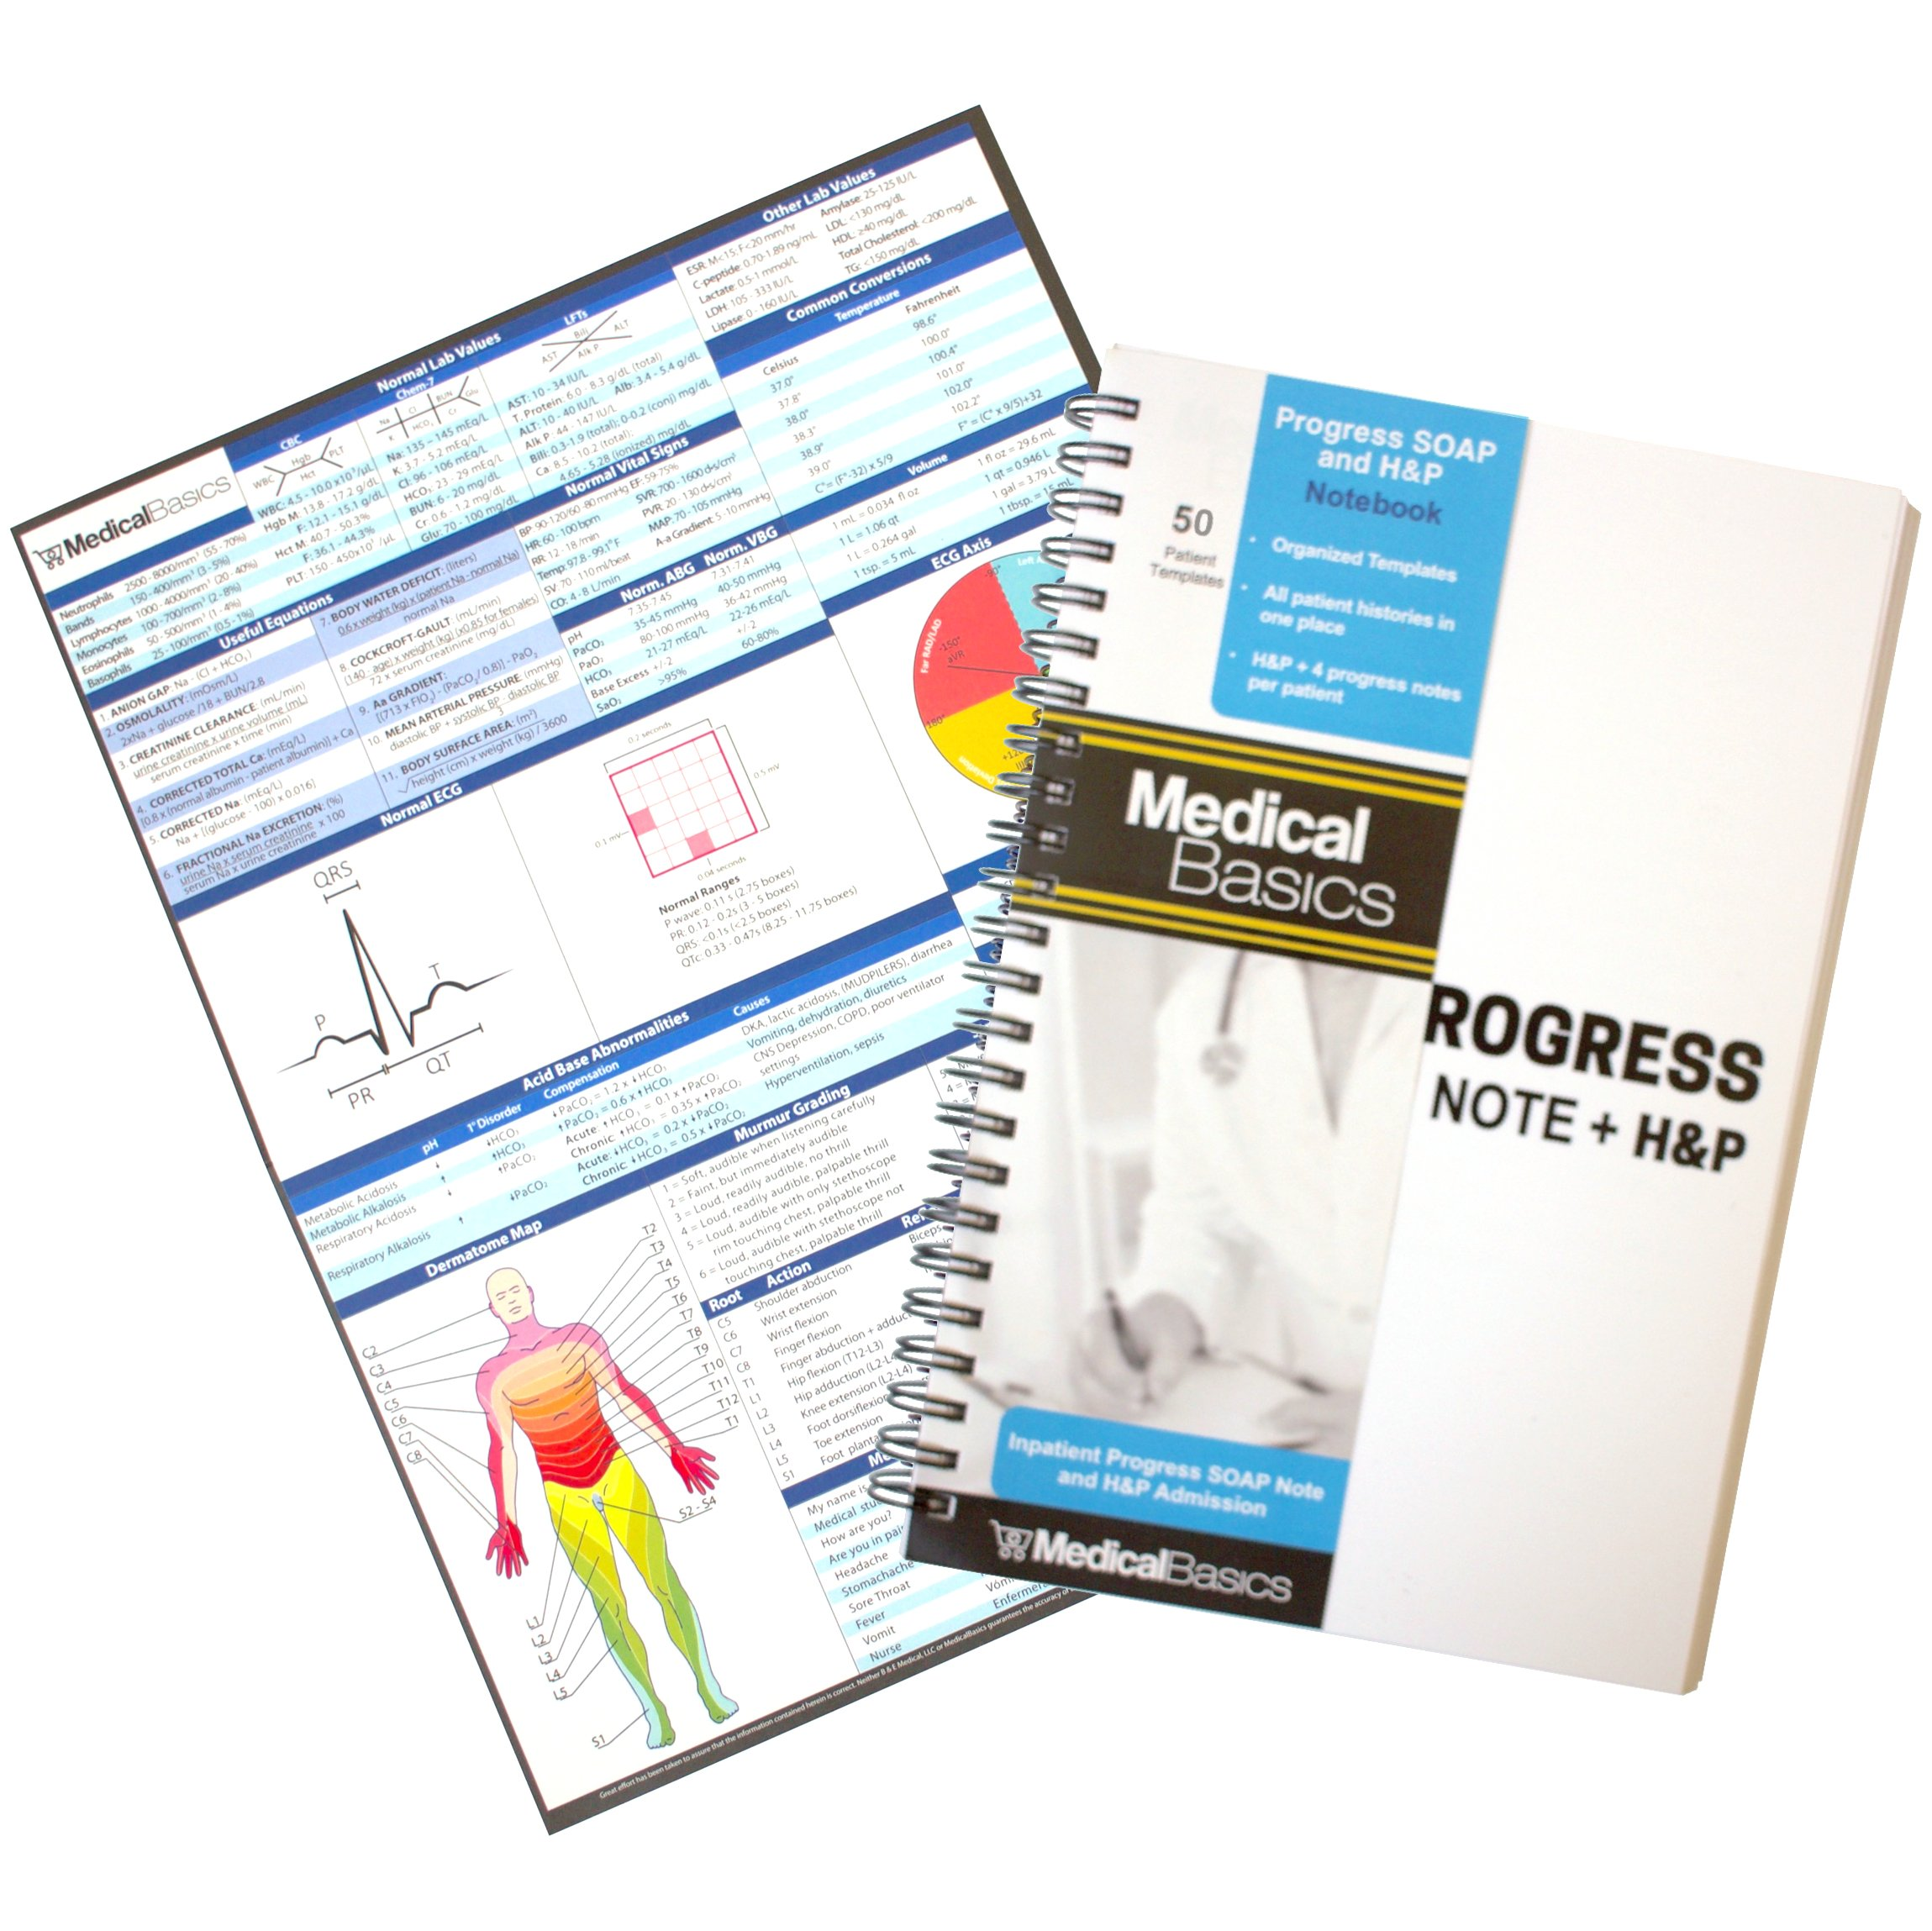 Progress & H&P + 4 Day SOAP Notebook - Progress Note + Medical History and Physical notebook, 50 templates with perforations